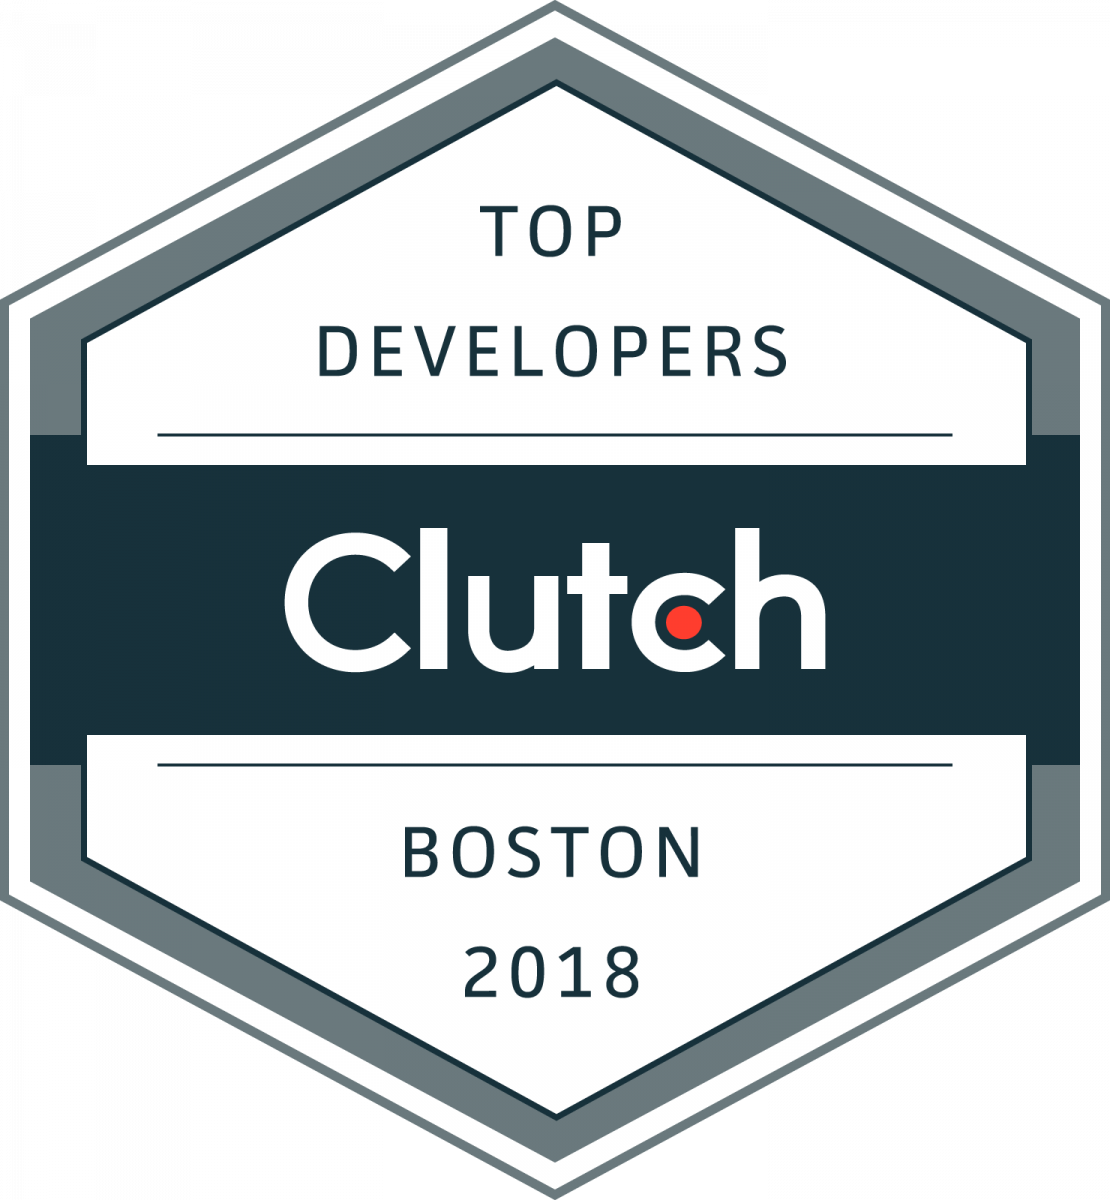 Top Developers Boston 2018 Badge